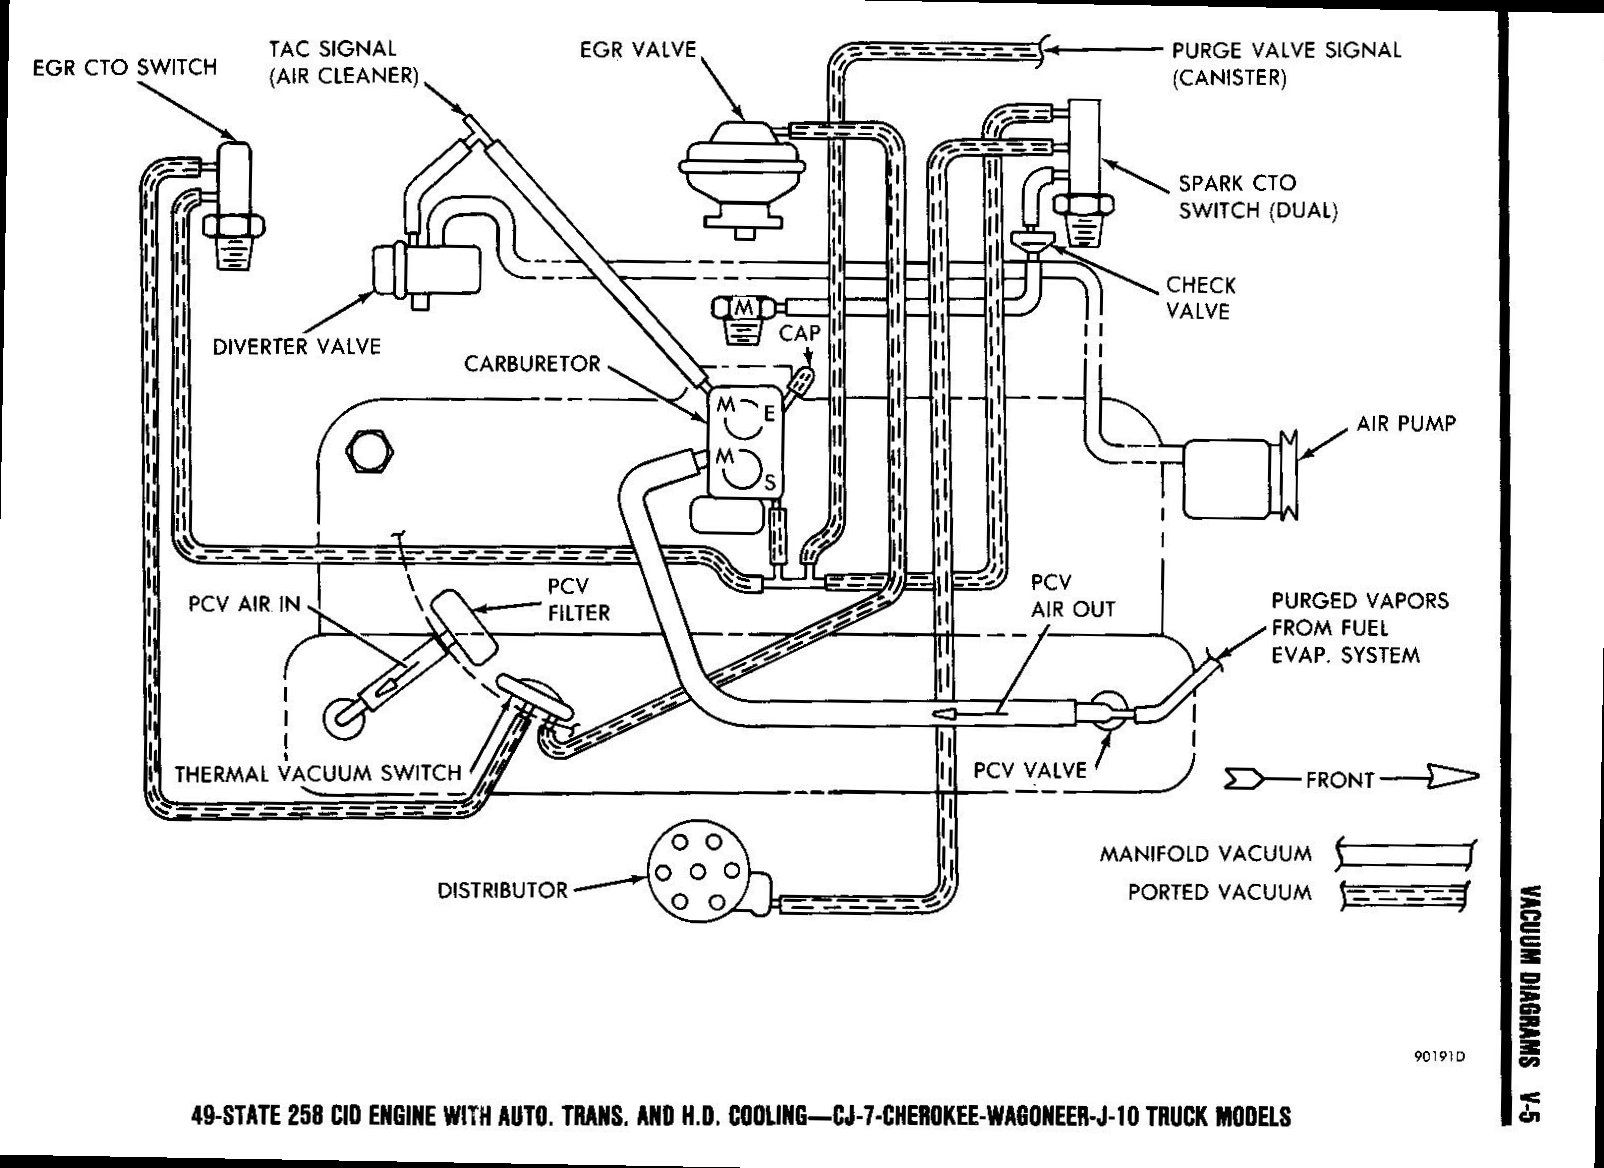 1980 cj7 engine diagram all wiring diagram 1979 Jeep Wiring Diagram